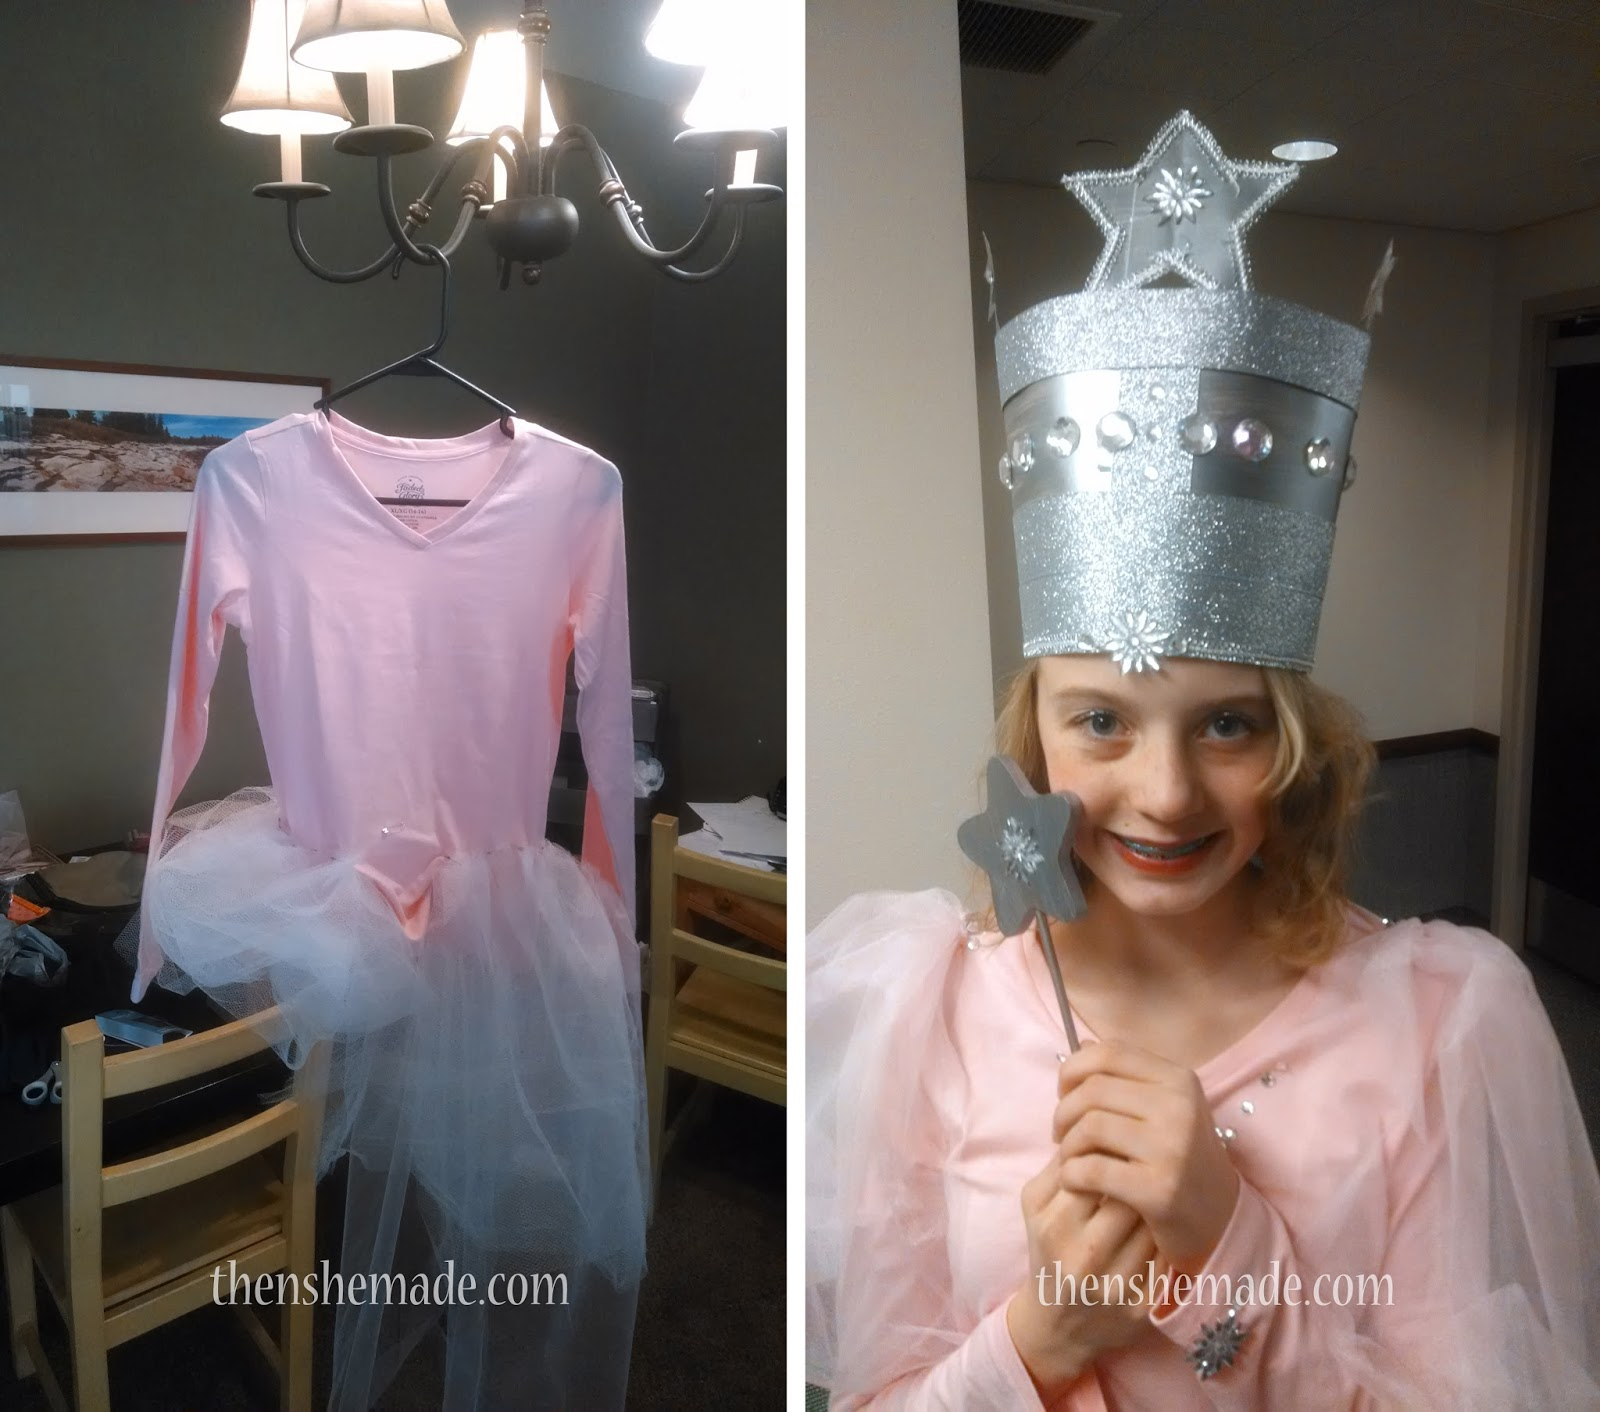 Then she made...: DIY Halloween Costumes - T'shirts and Tulle